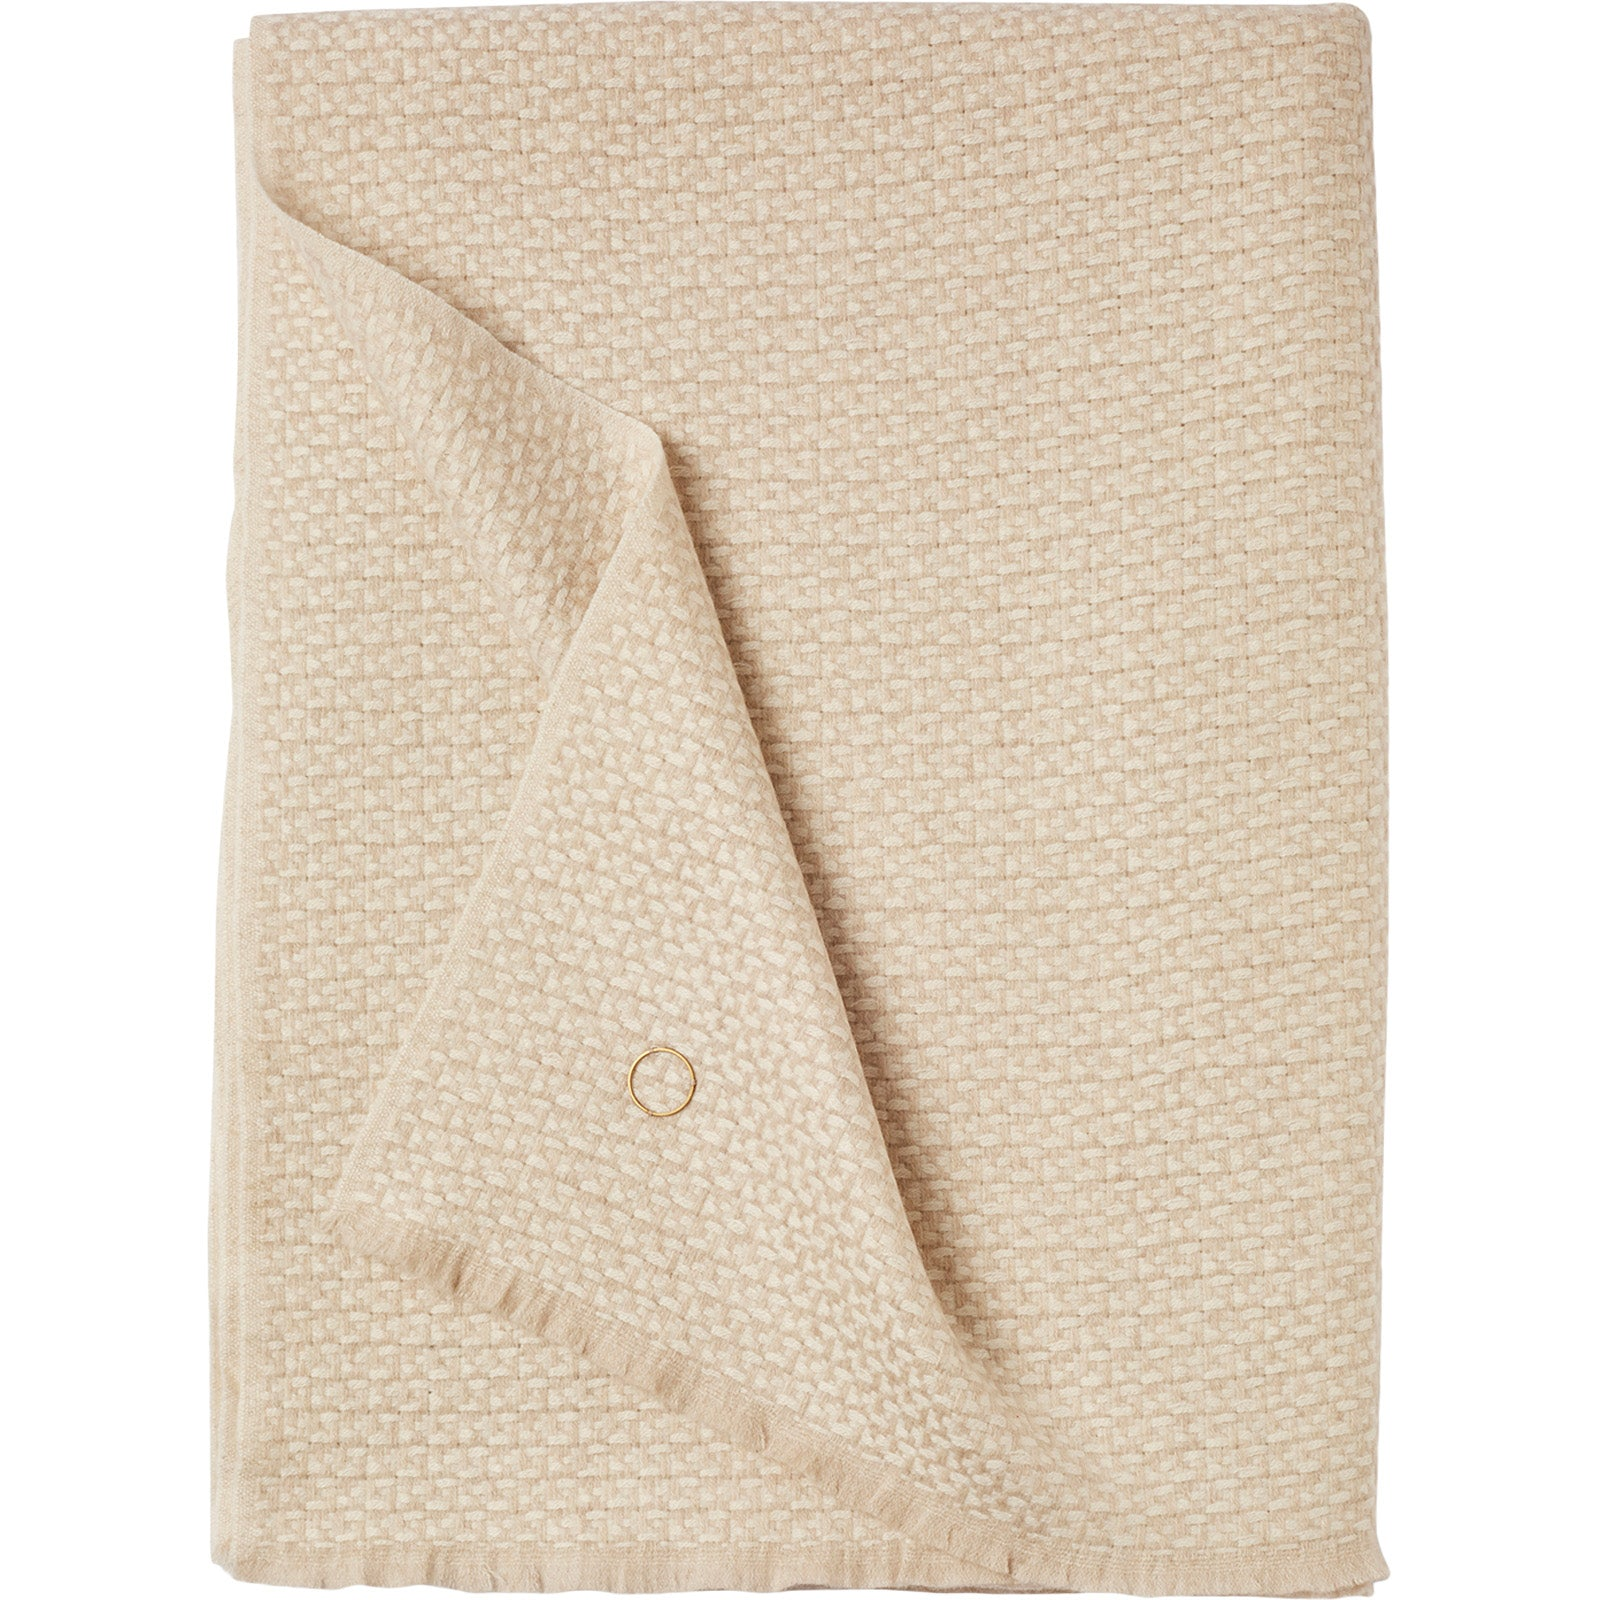 Tasa Throw Ivory - 9 Best Luxury Throws & Blankets to Buy for your Home - Style Guide - LuxDeco.com